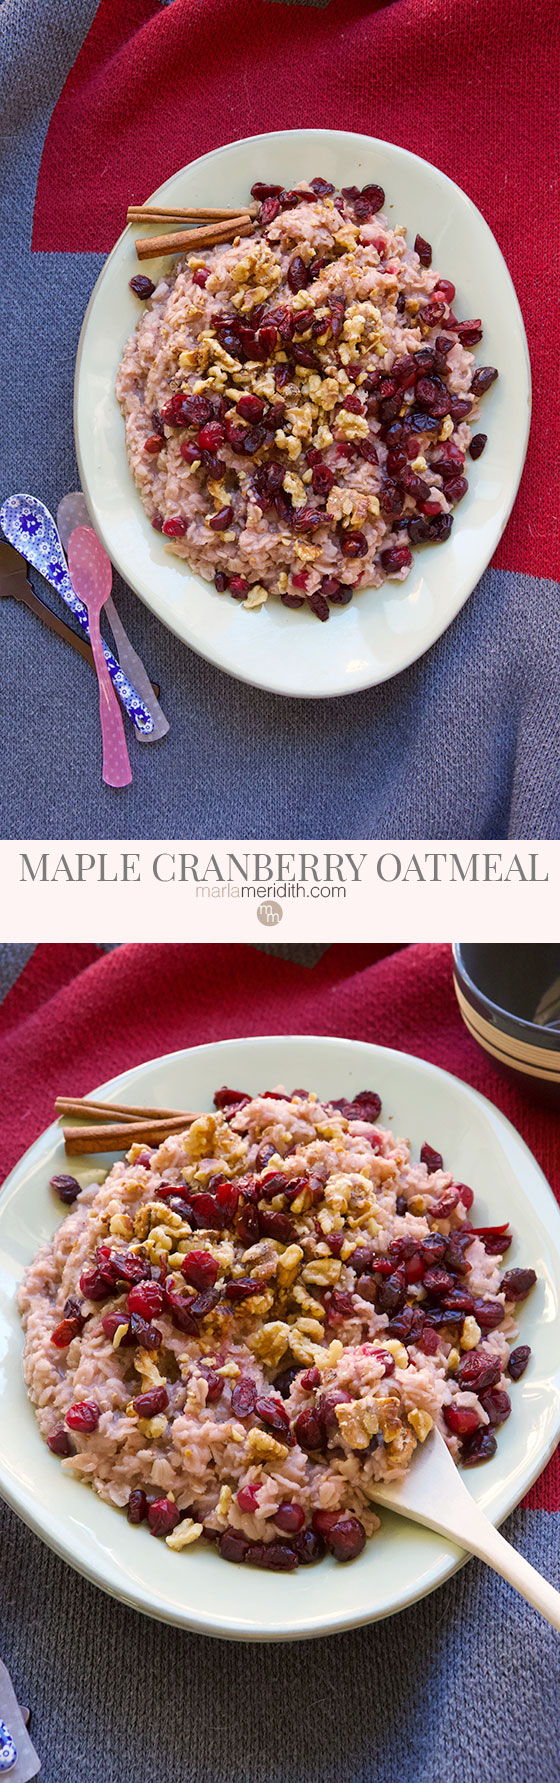 Looking for a new way to prepare oatmeal? Try this healthy, delicious, vegan Maple Cranberry Oatmeal recipe. It's a comforting meal on chilly fall and winter days. MarlaMeridith.com